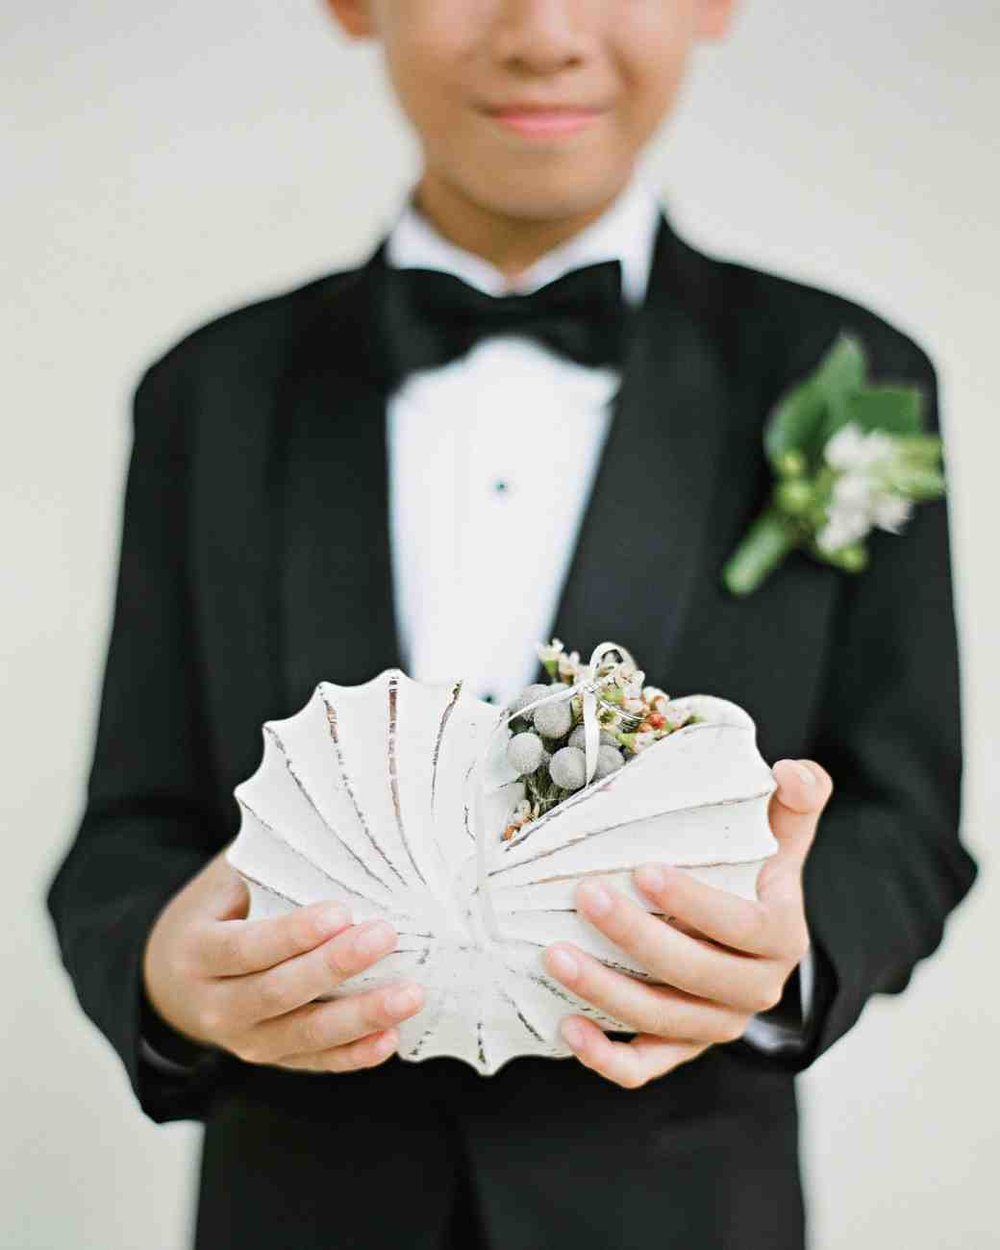 peony-richard-wedding-maldives-ring-bearer-seashell-1402-s112383_vert.jpg